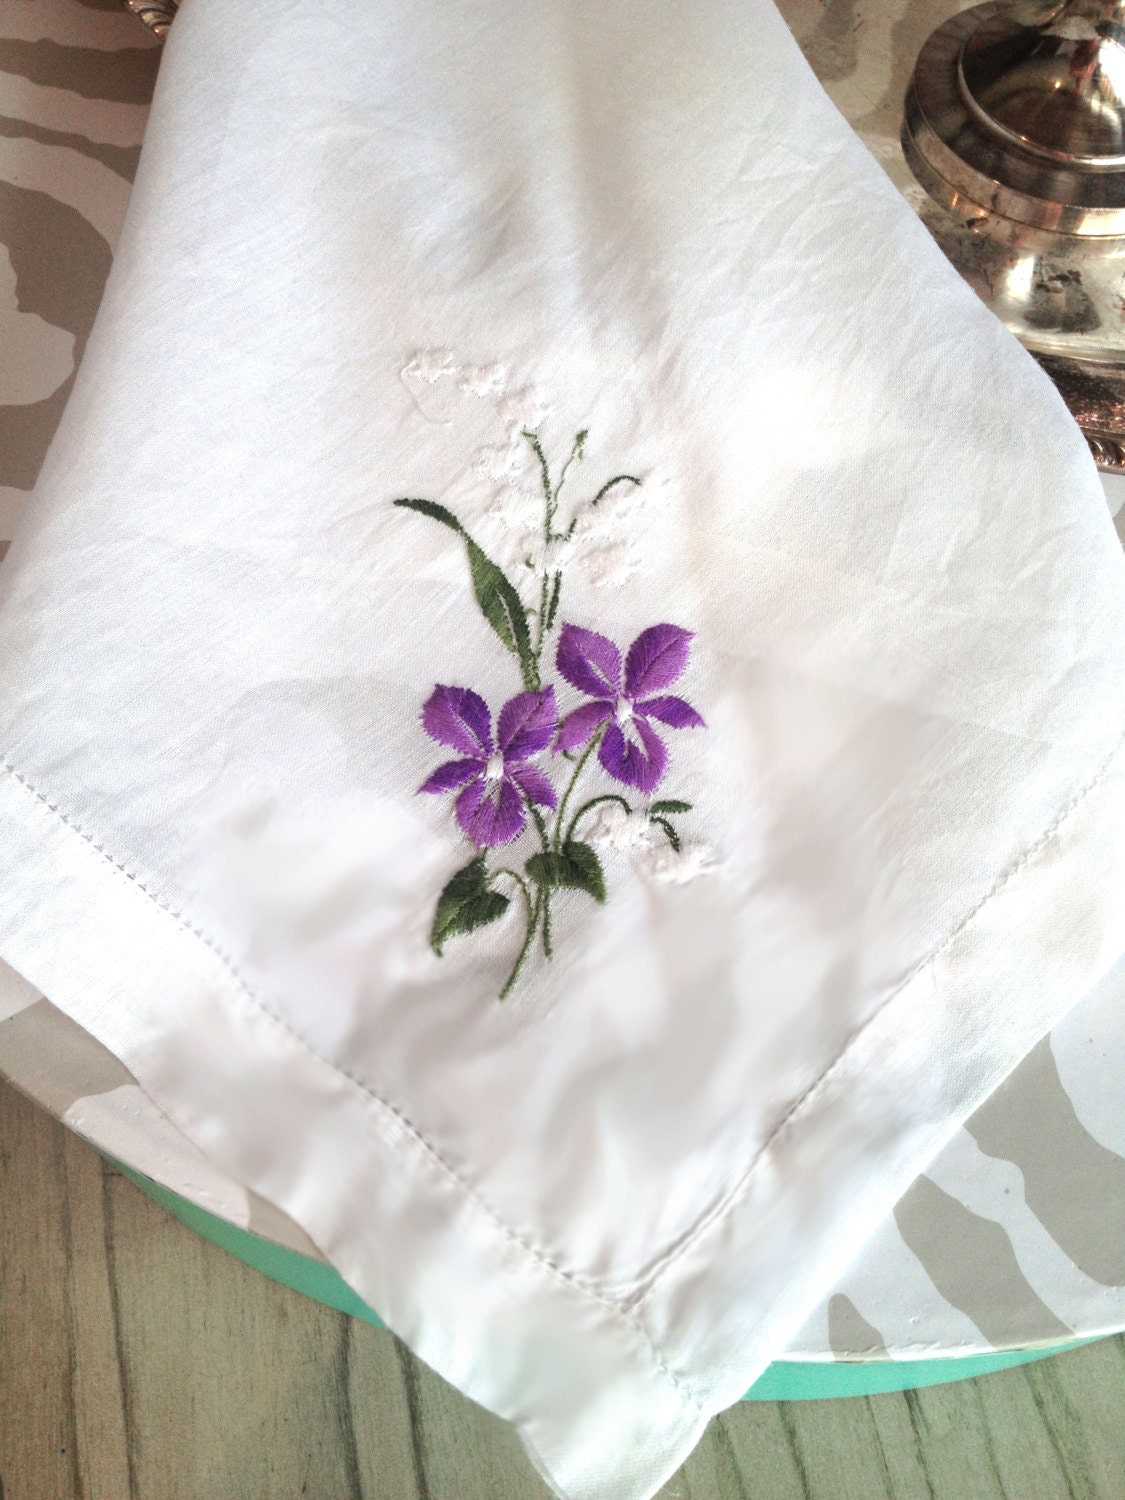 Vintage Handkerchief Vintage Hankies Handkerchiefs Embroidered Flowers Purple on White Hankie Wedding Keepsake Gift Hope Chest - TastefulTikes